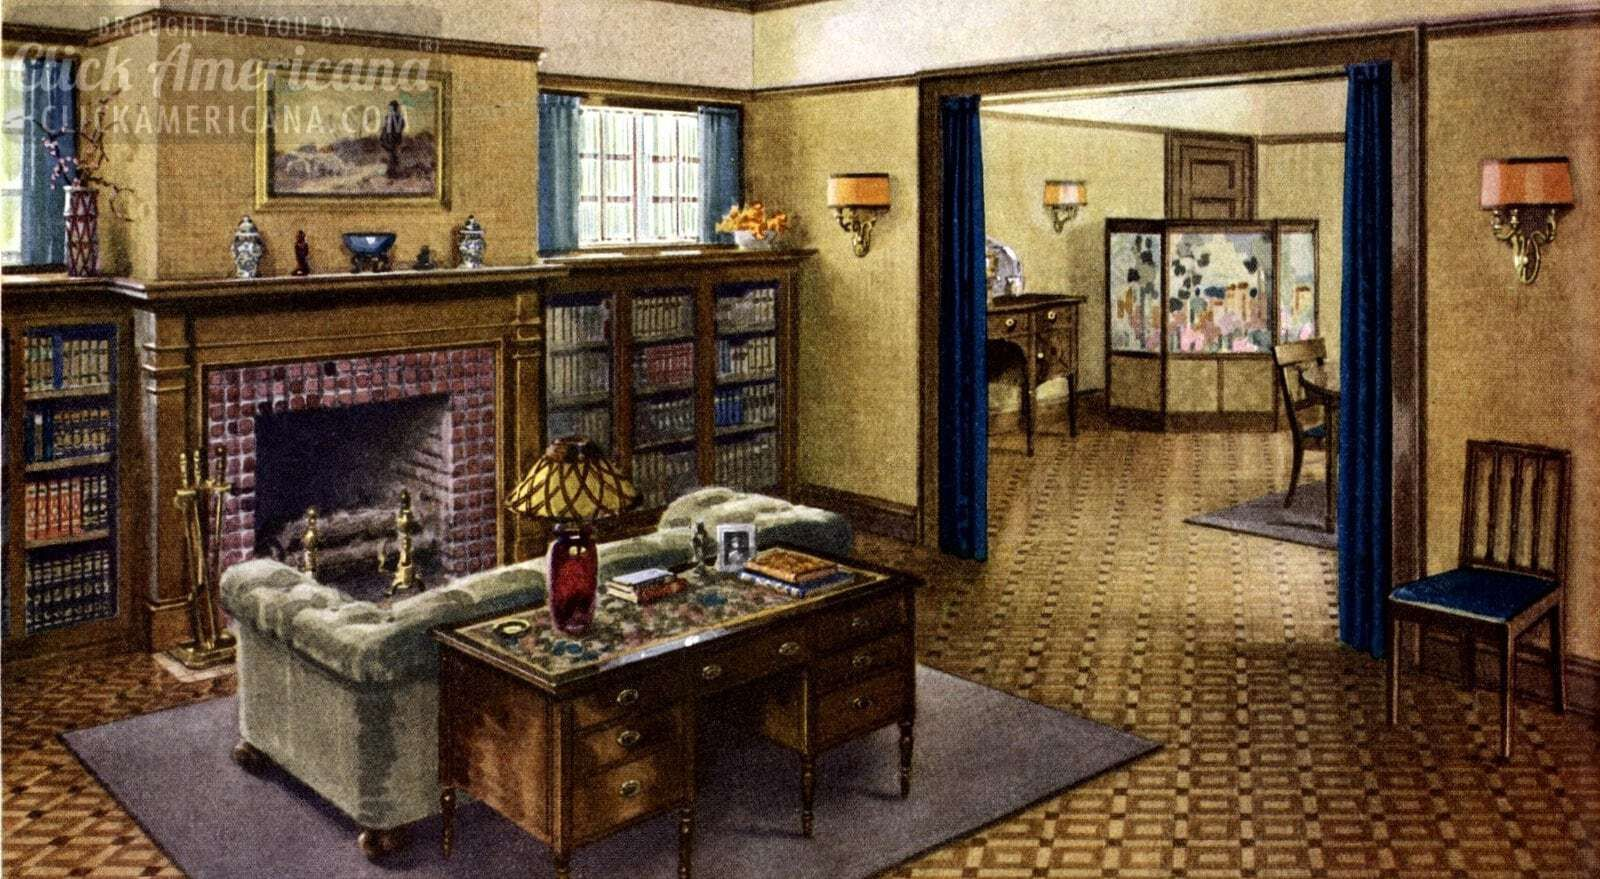 See Inside The Ideal American Home Of The 20s Decor Home Living Room 1920s Home Decor 1920s House